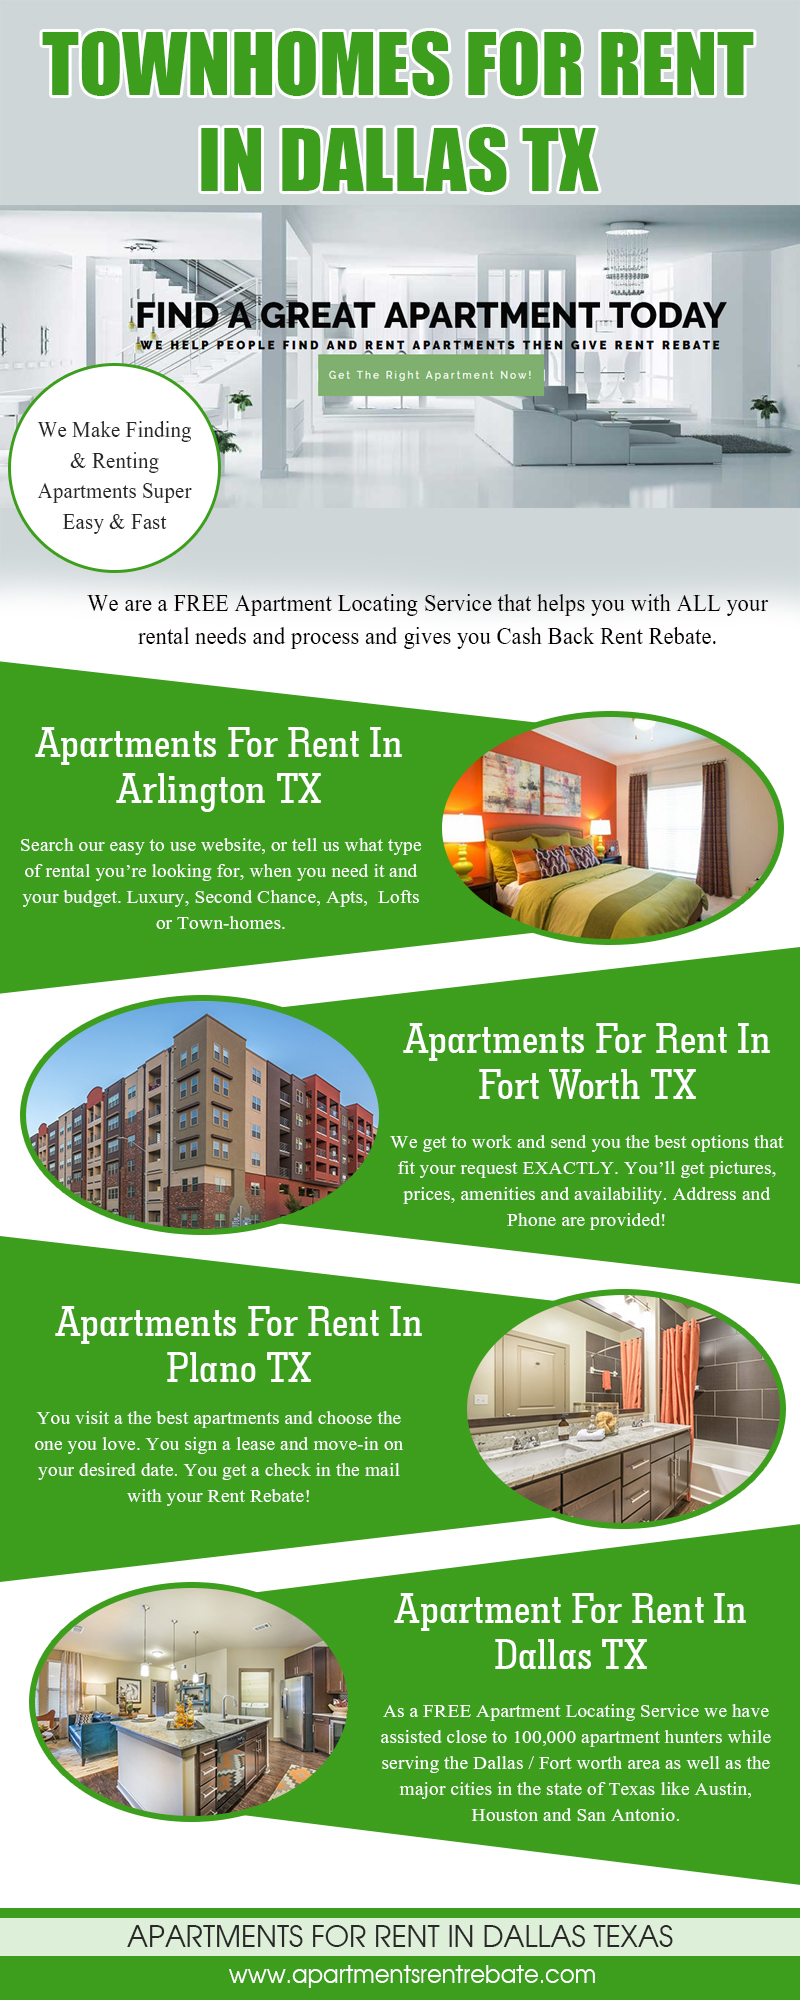 Apartments For Rent Near Dallas TX